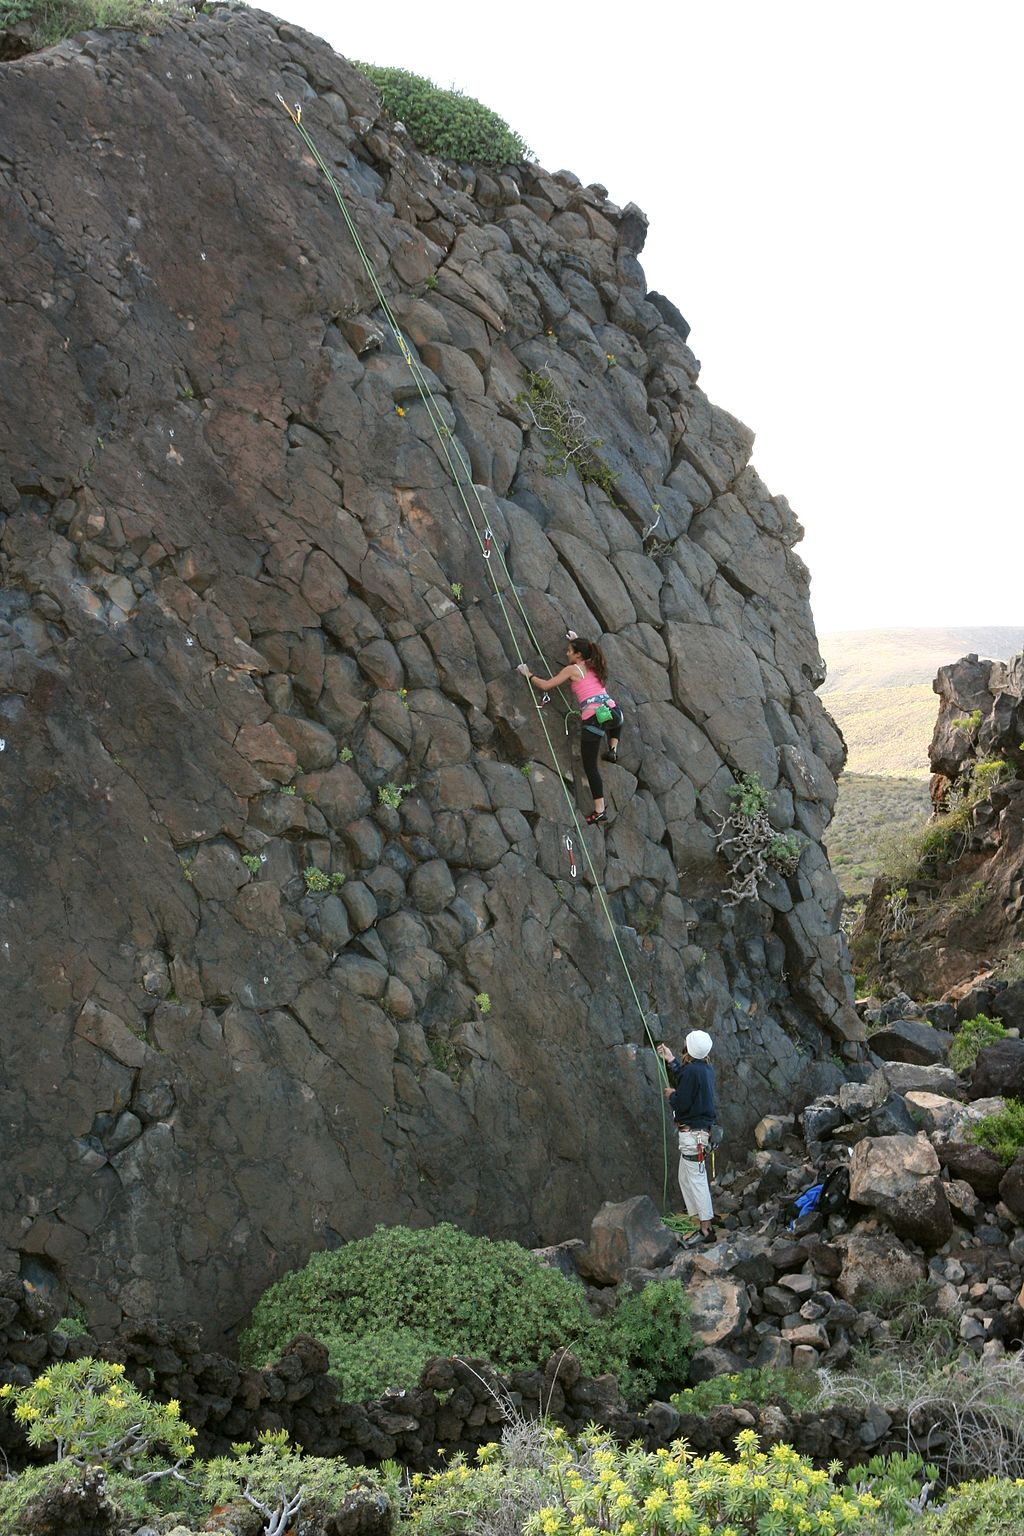 Lanzarote Rock Climbing Wikimedia Commons image by Frank Vincentz